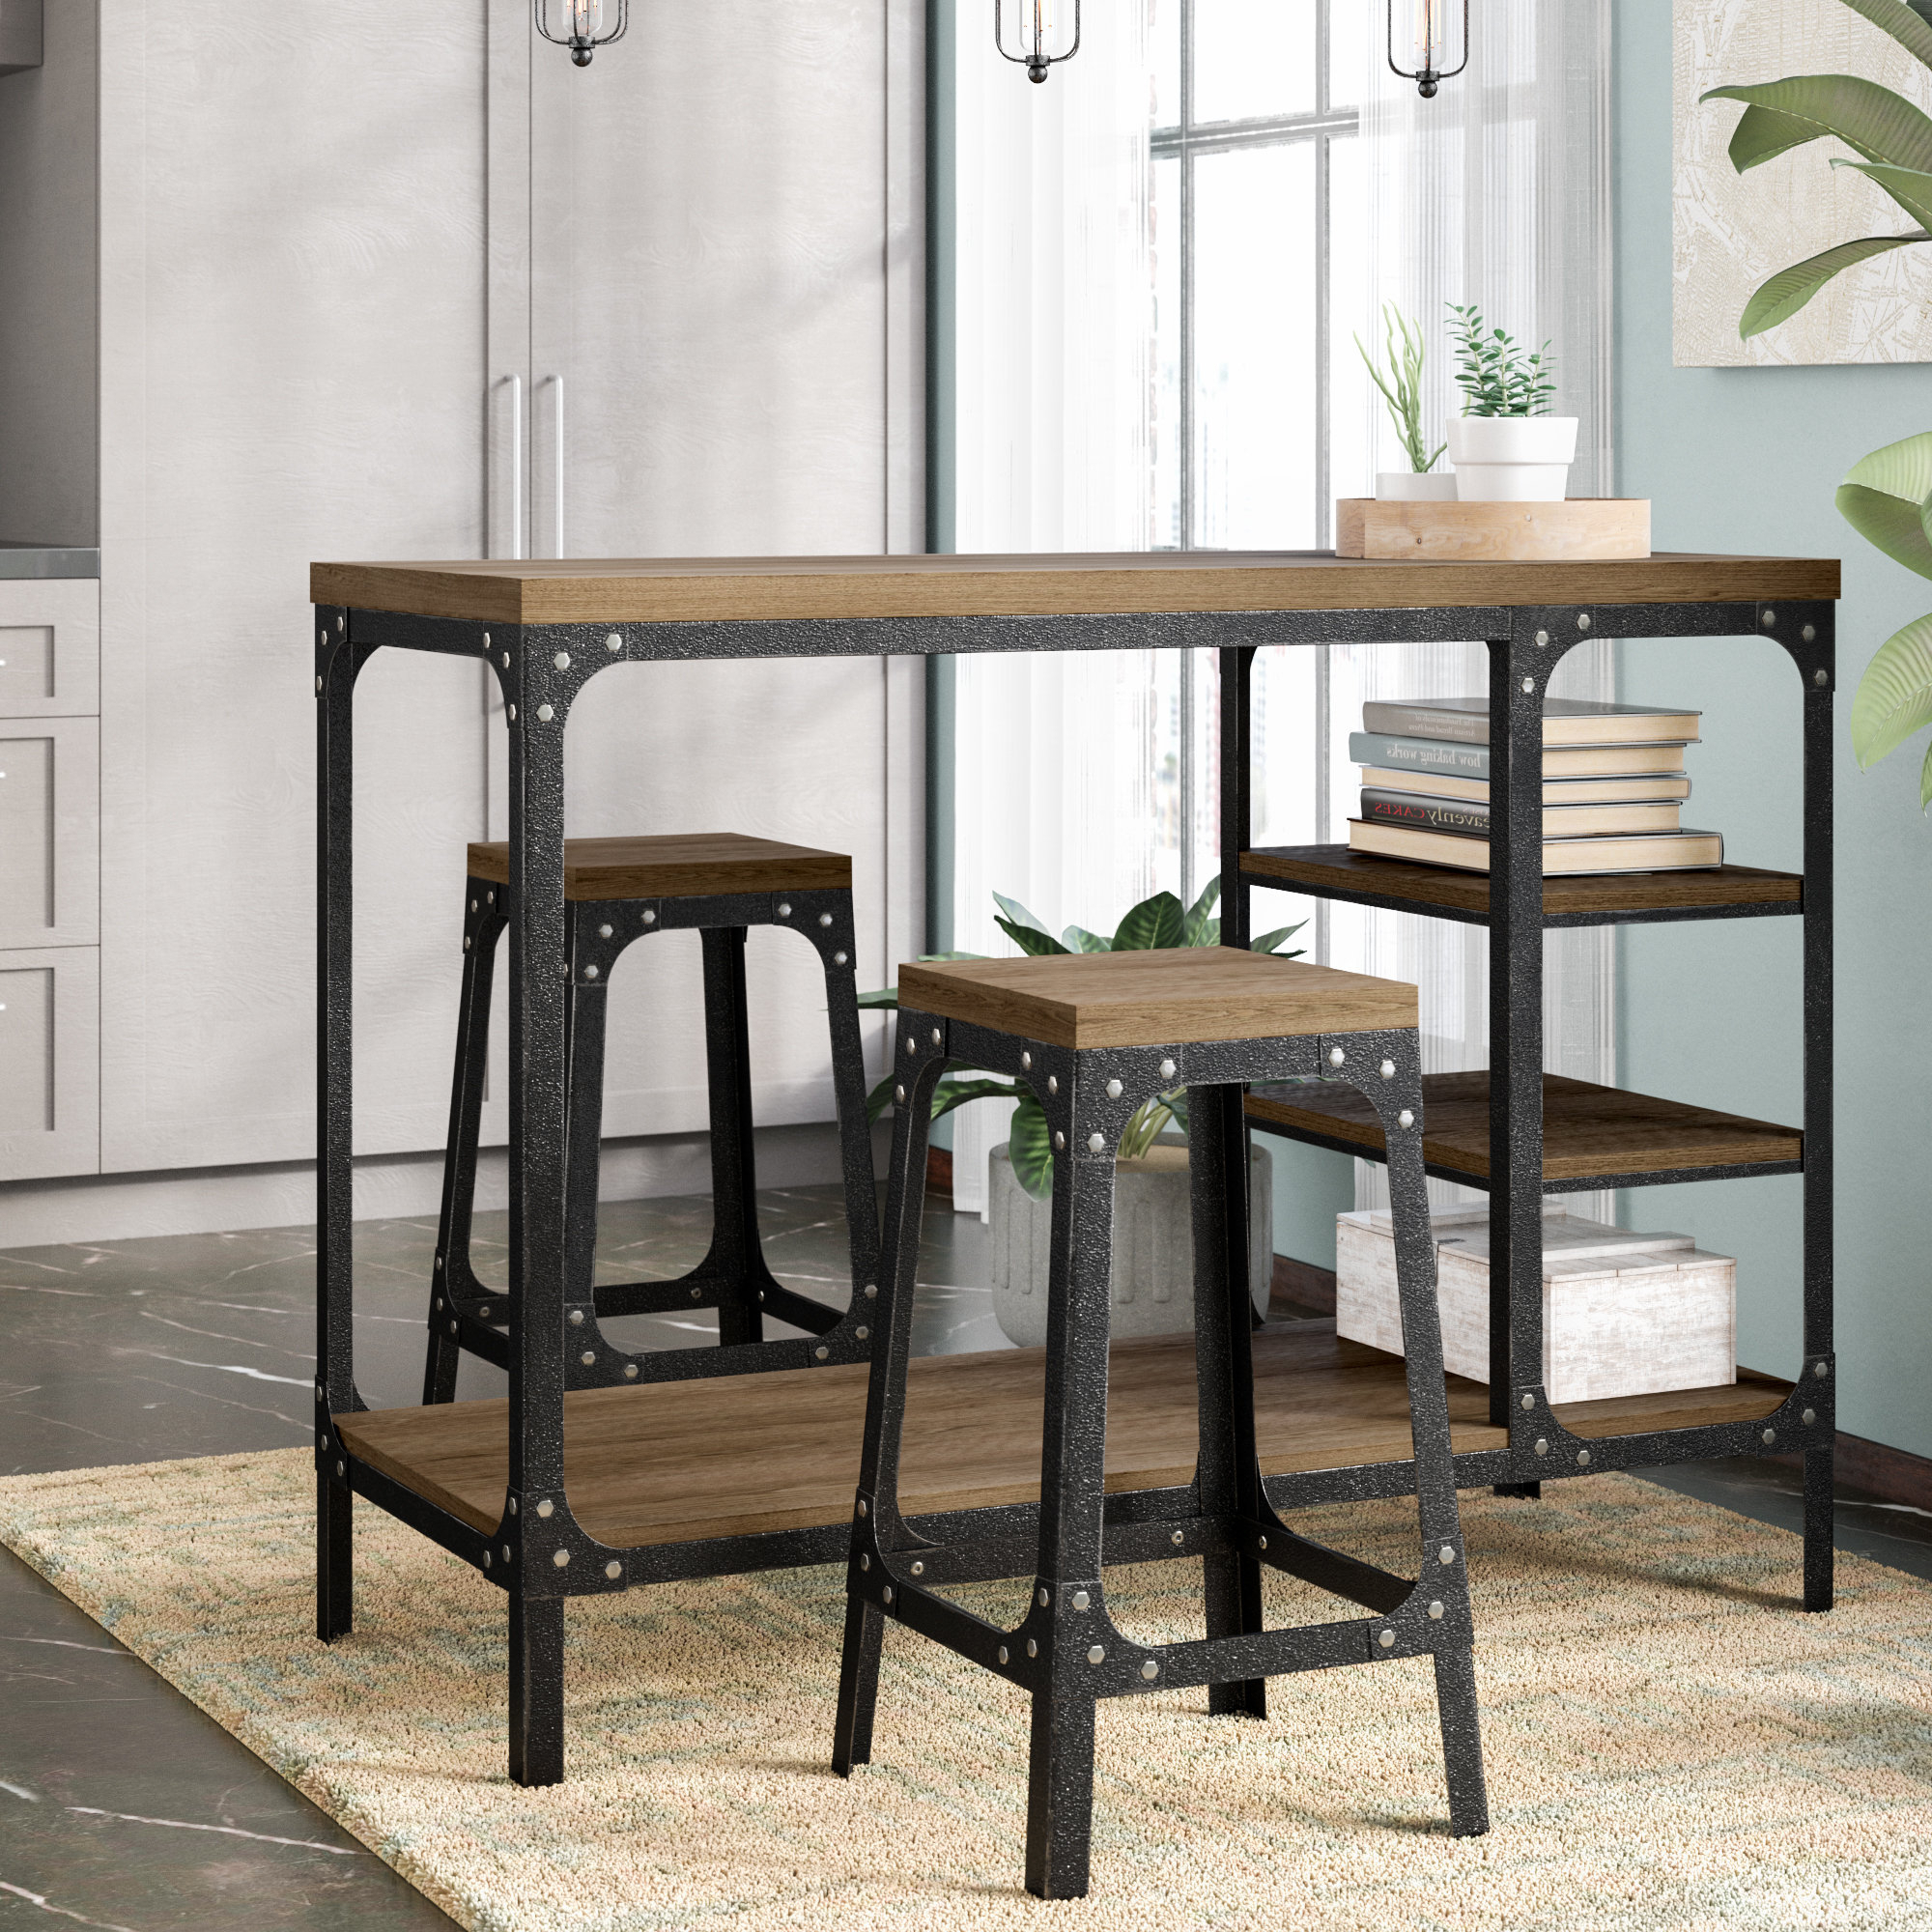 Williston Forge Terence 3 Piece Breakfast Nook Dining Set Pertaining To Latest Lillard 3 Piece Breakfast Nook Dining Sets (View 20 of 20)